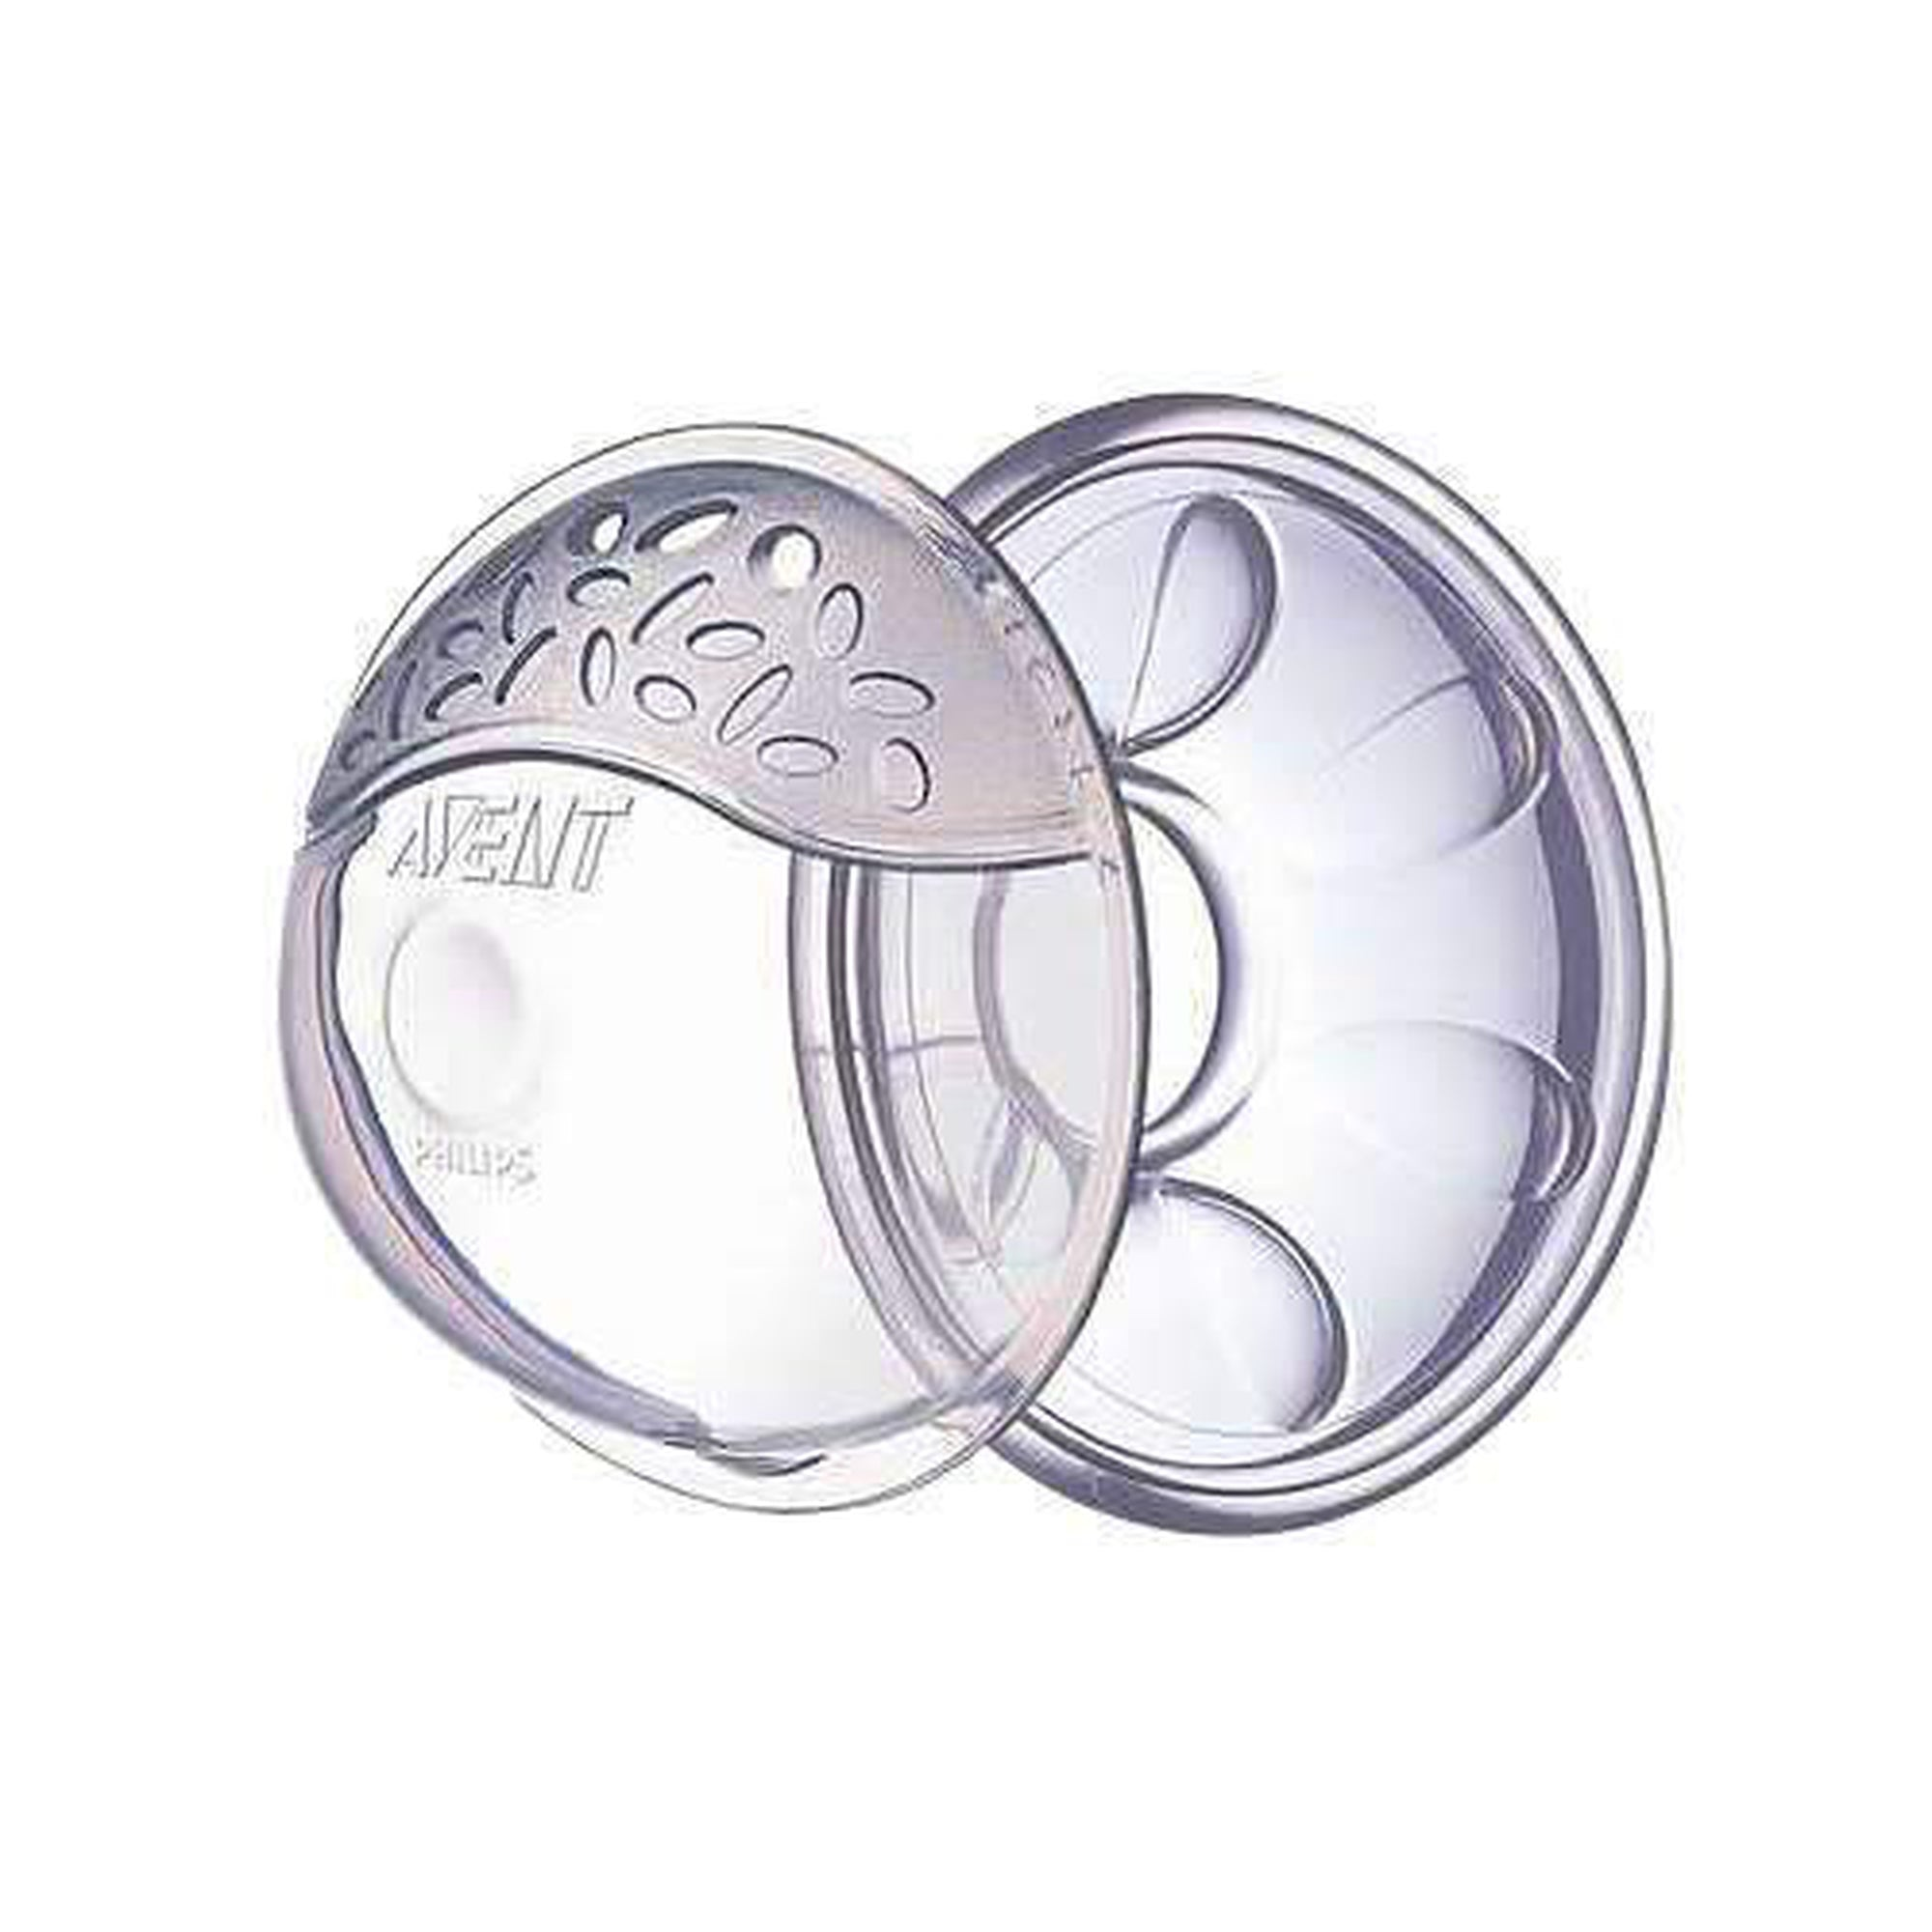 Avent Breast Shell Set-Breast Shell-Mother and Baby Shop Kenya's #1 Online Baby Shop